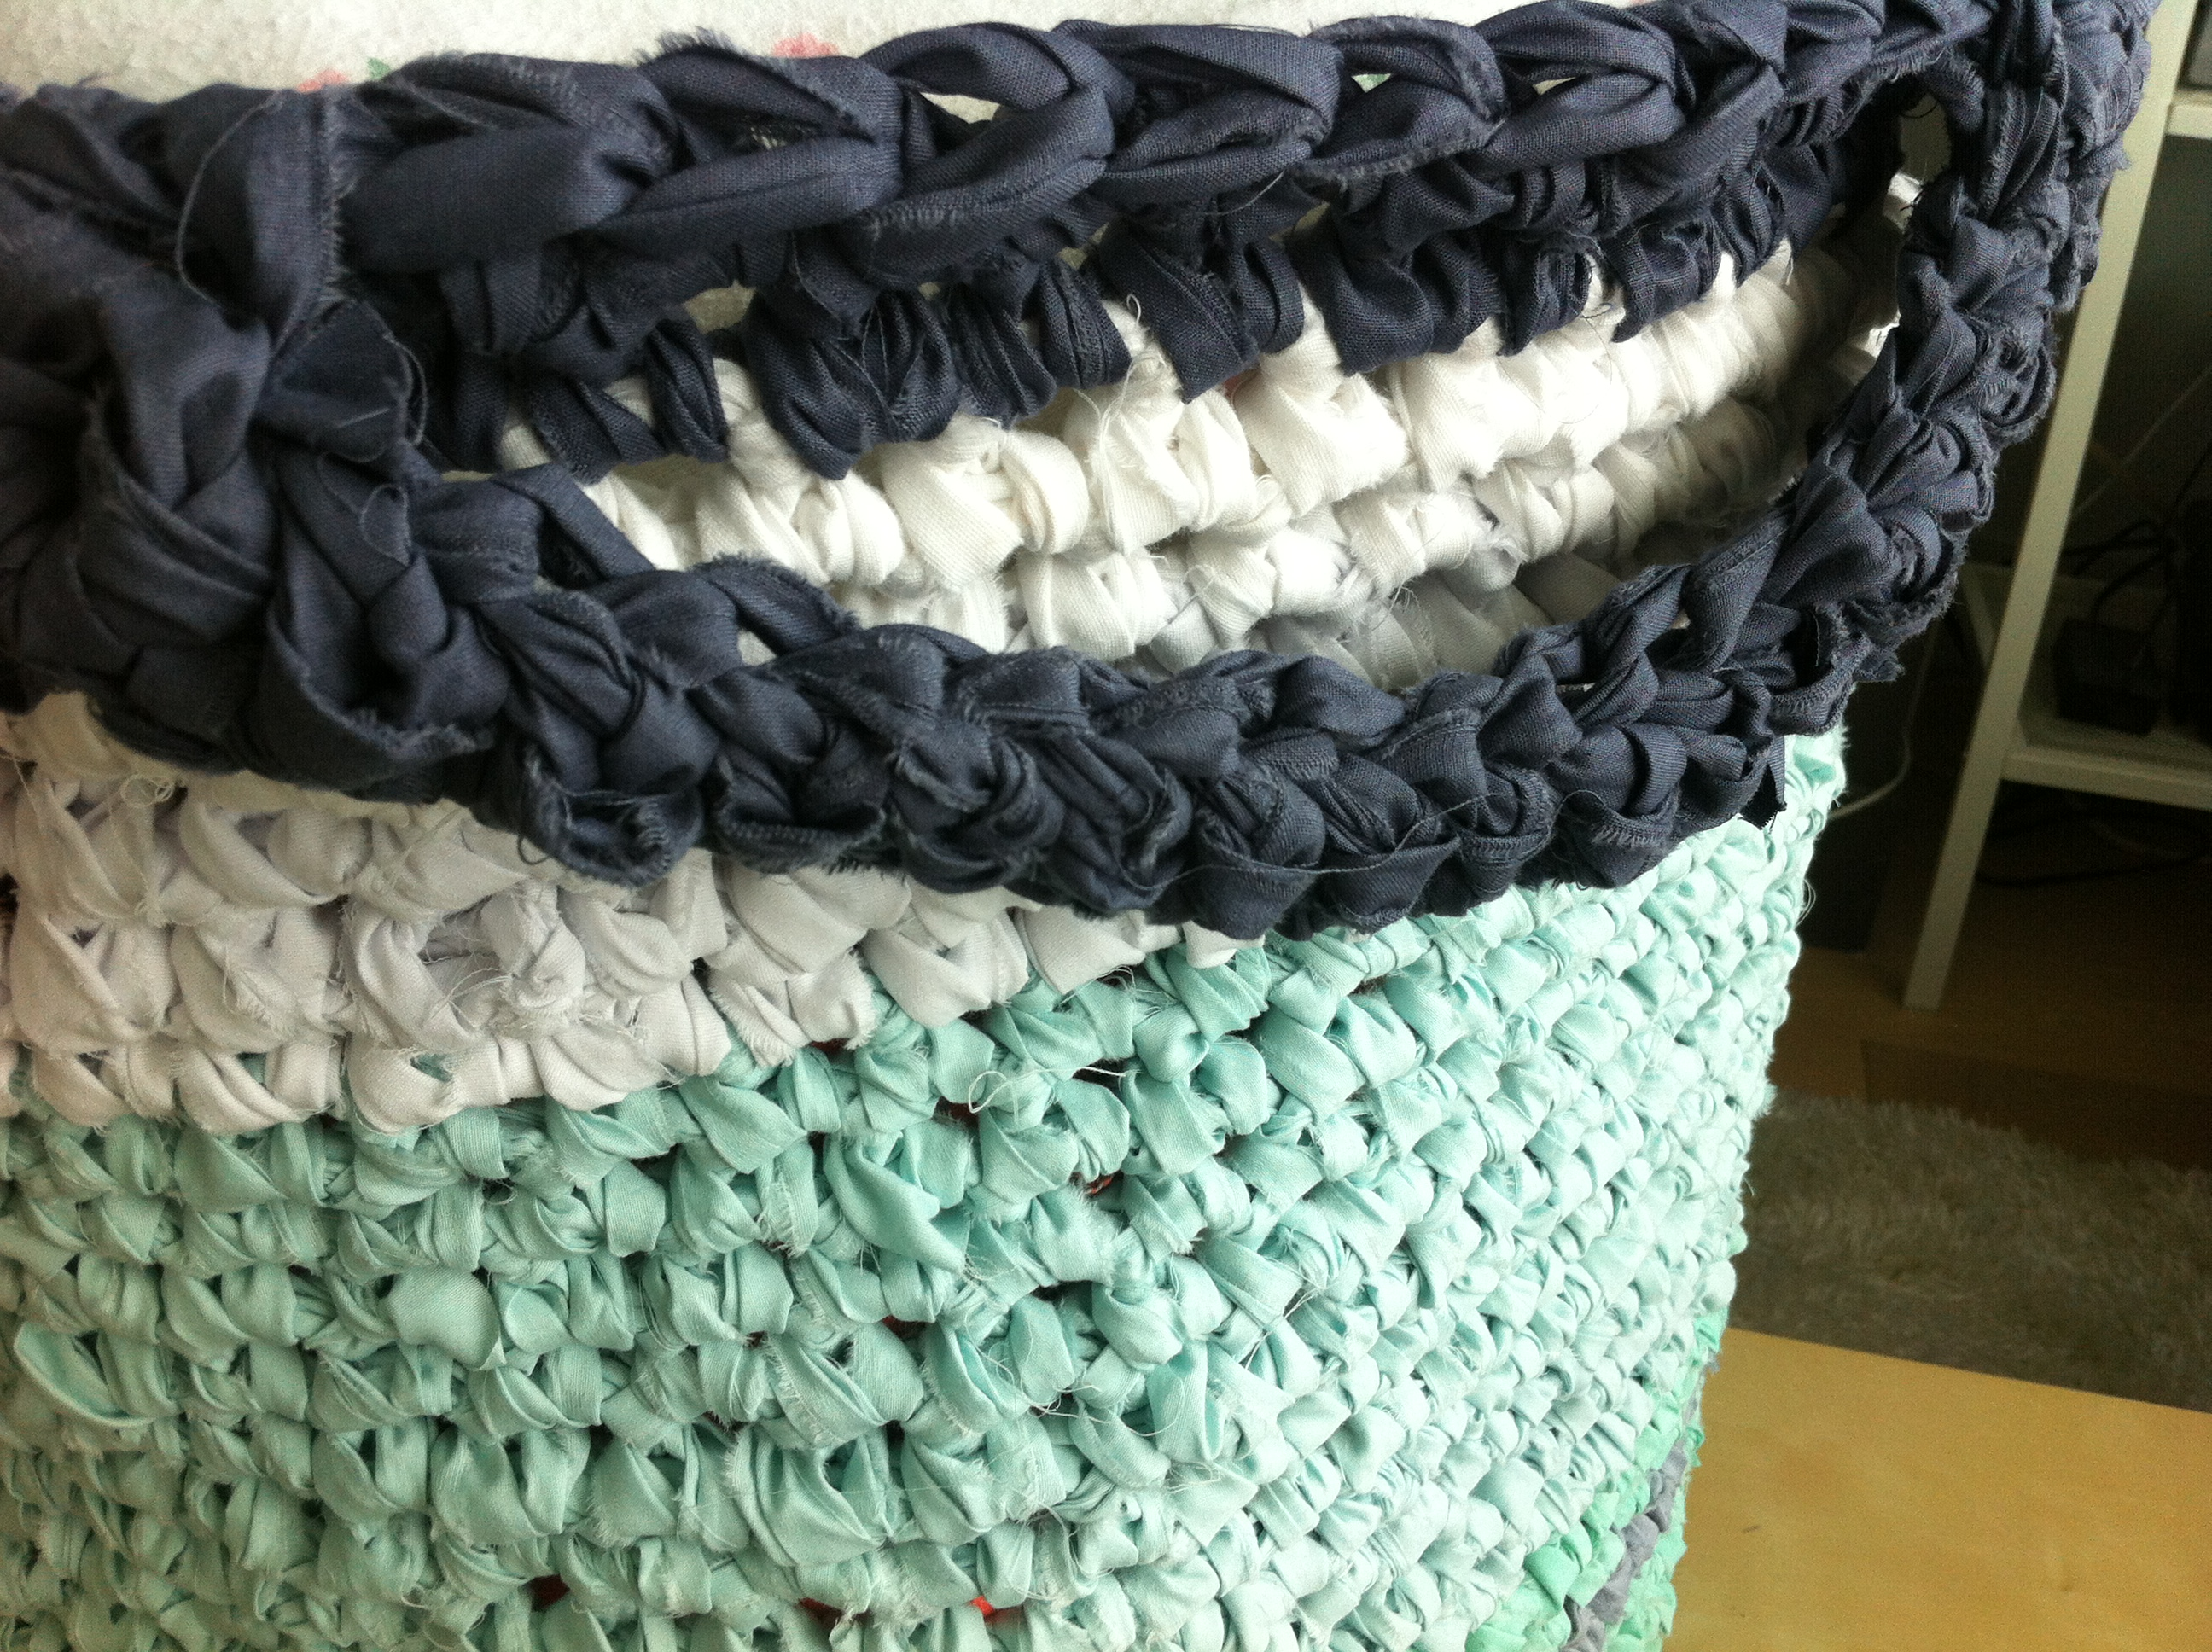 Rag Rug Basket Extraordinaire! - Making Things is Awesome